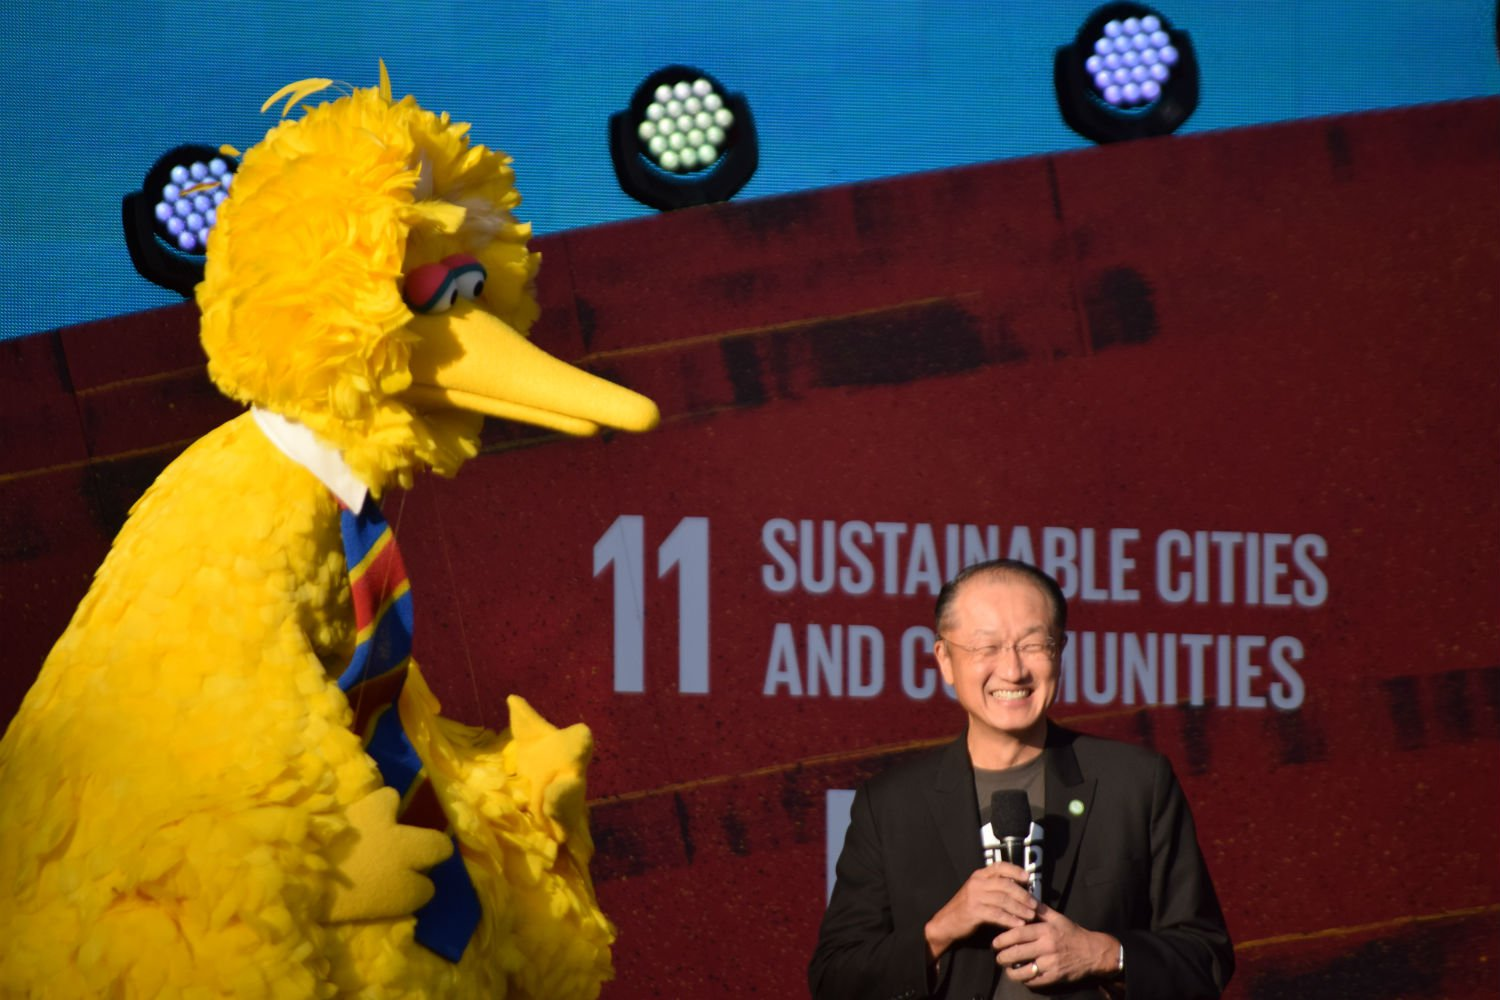 Big Bird and world bank pres edited.jpg